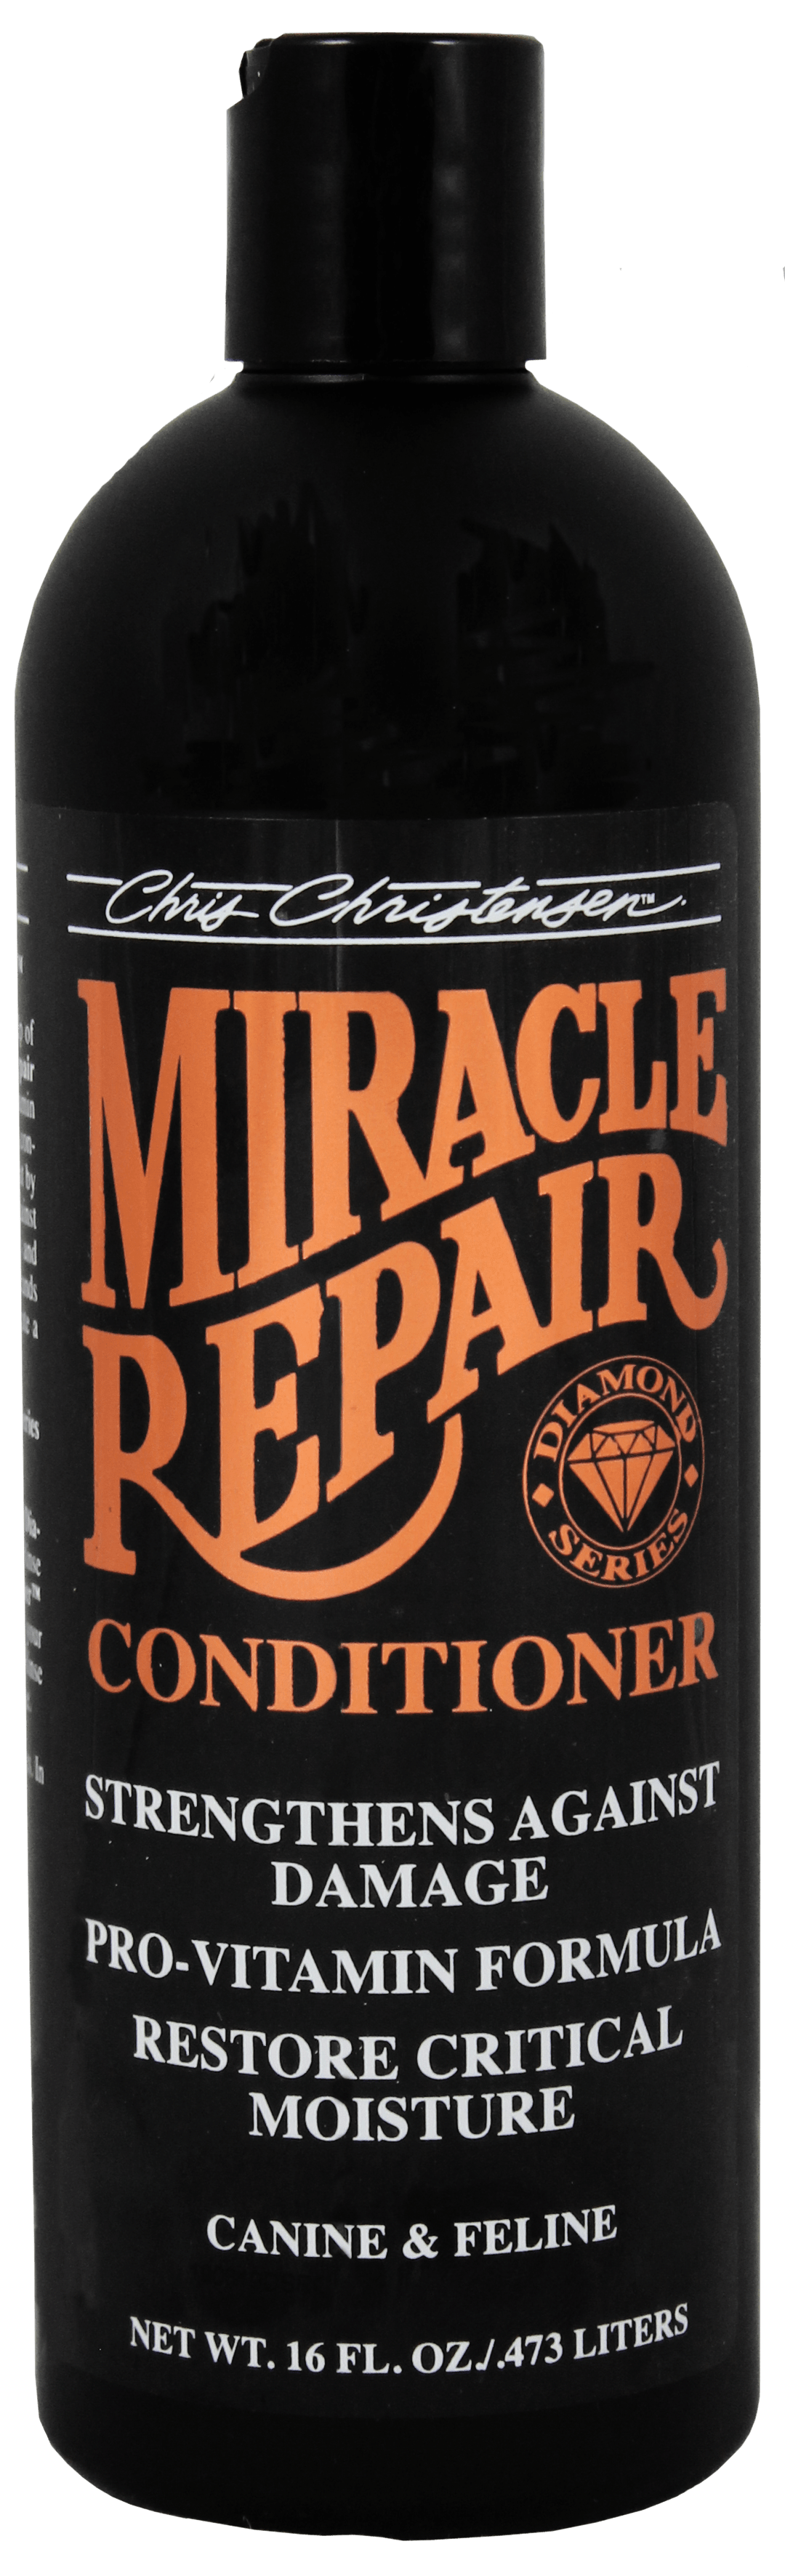 CC - Diamond Series Miracle Repair Conditioner